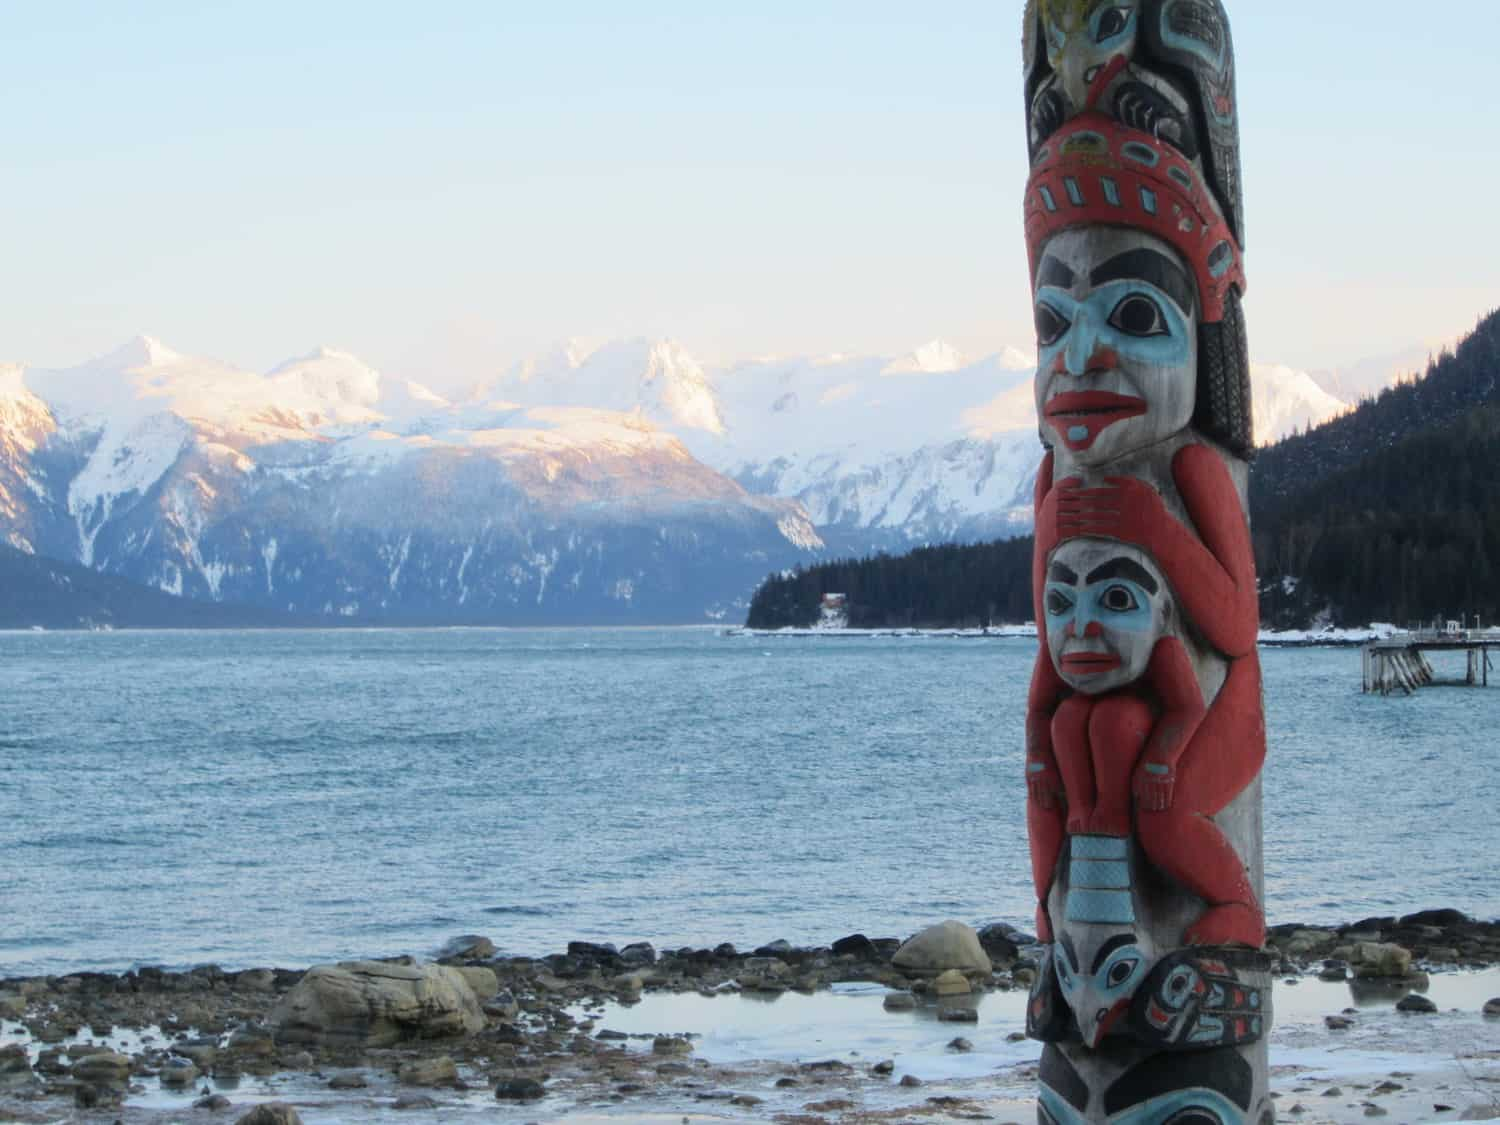 Haines Cruise Excursions - dancingnomad3 via Flickr